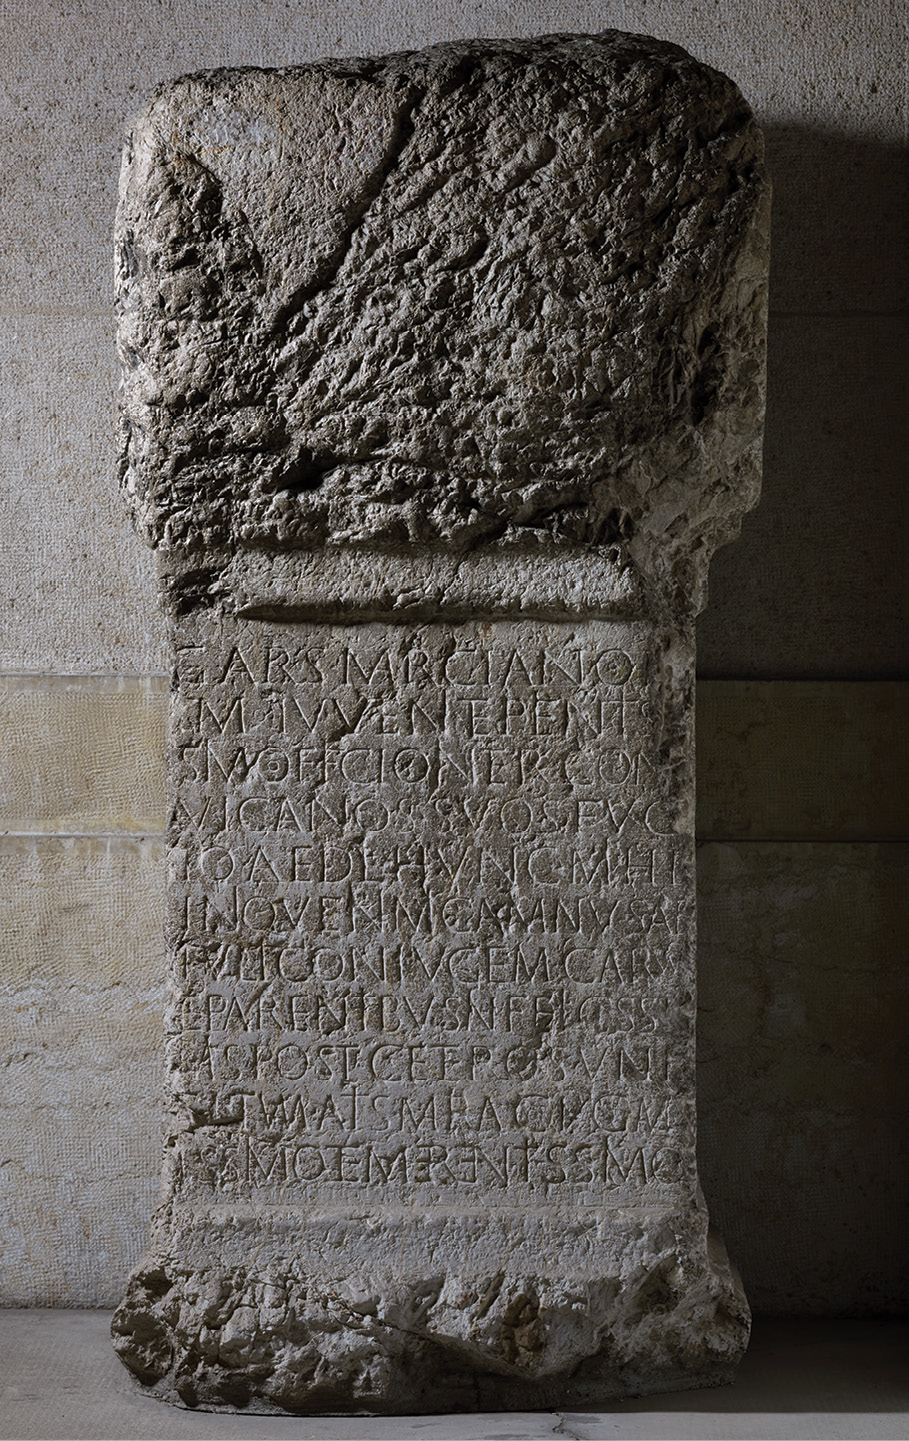 BELOW The epitaph for Gaius Arsius Marcianus (named in the first line) was set up by his wife Atisia Maria (named in the penultimate line), following the murder of her husband.